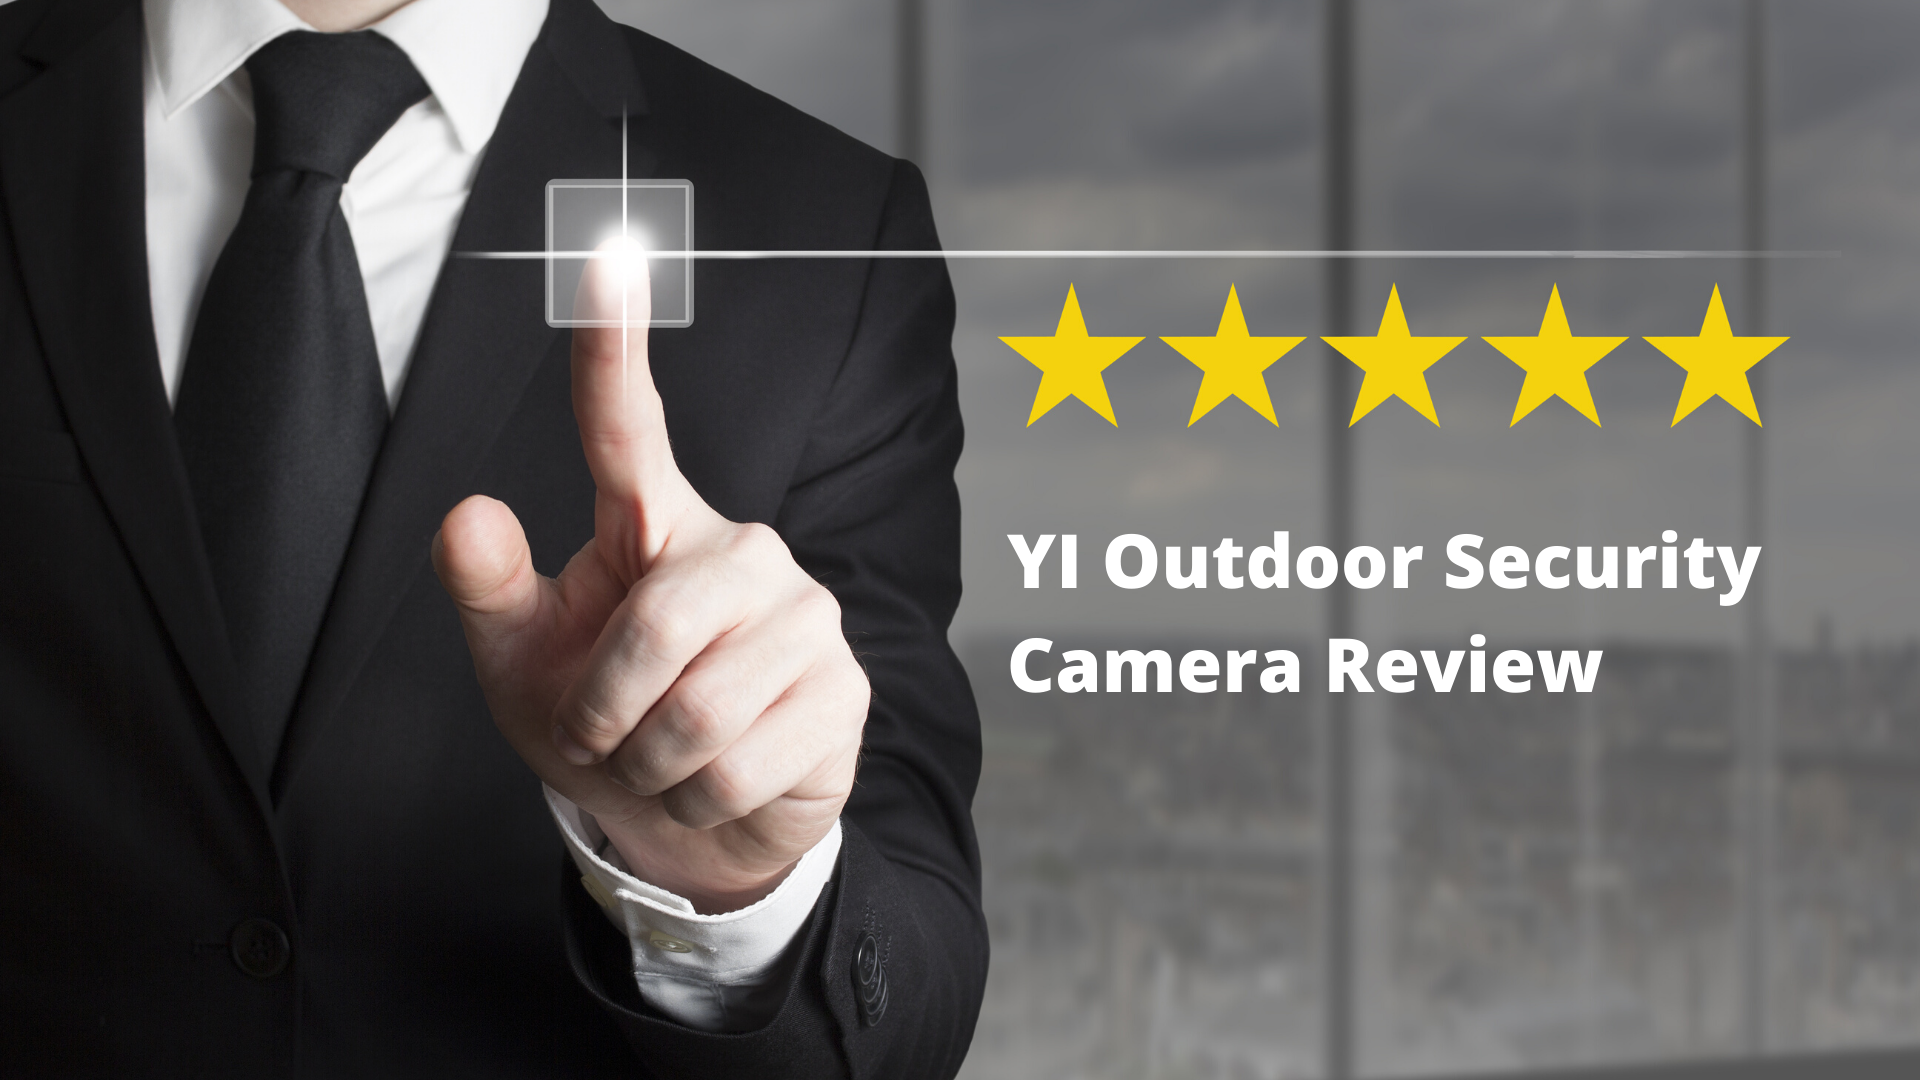 YI Outdoor Security Camera Review